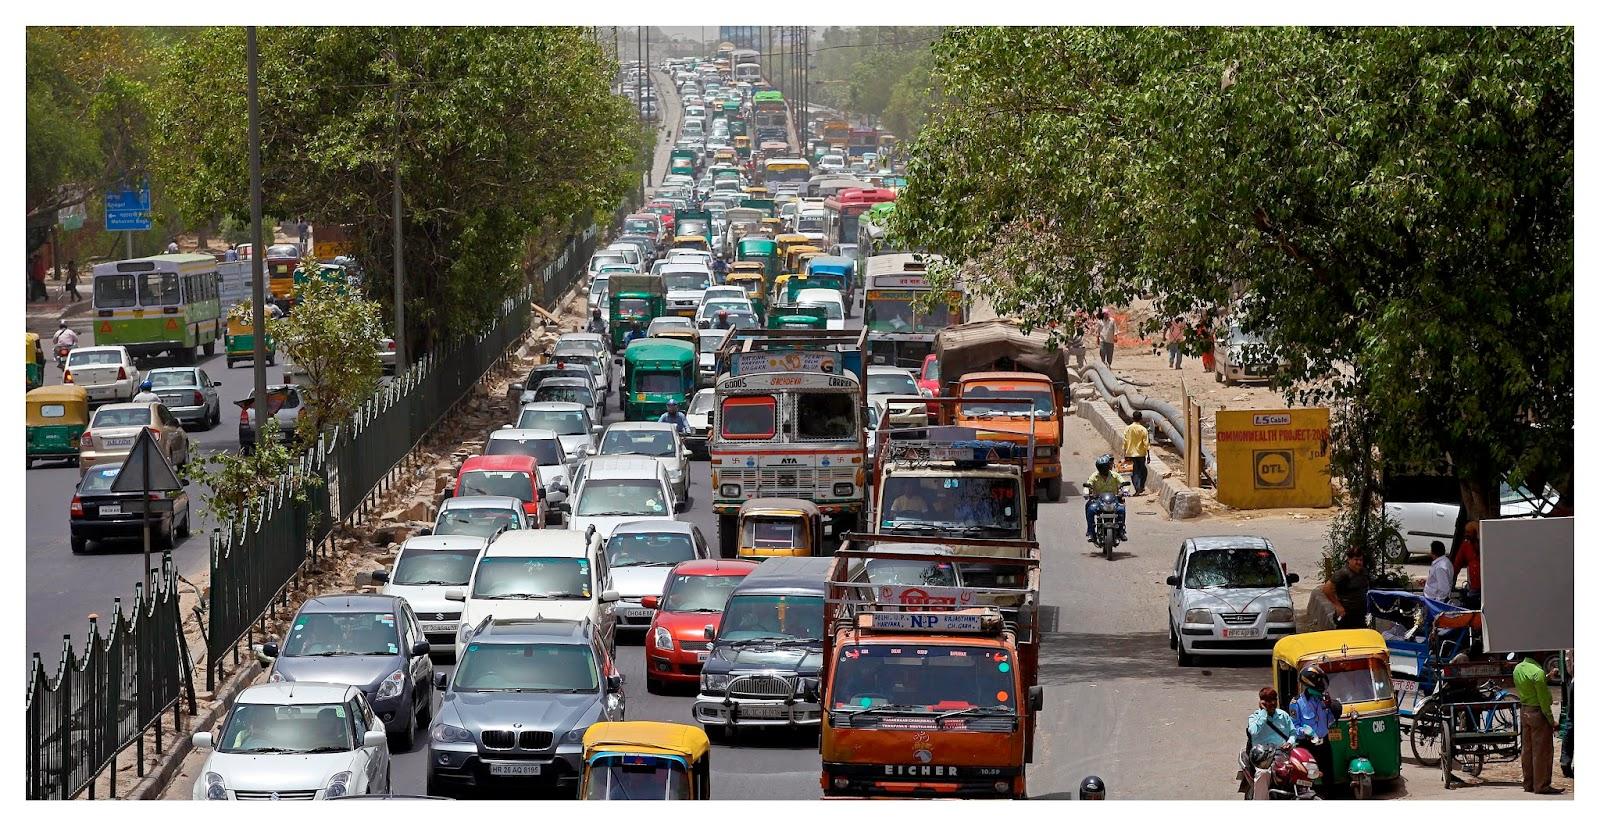 Vehicles on India